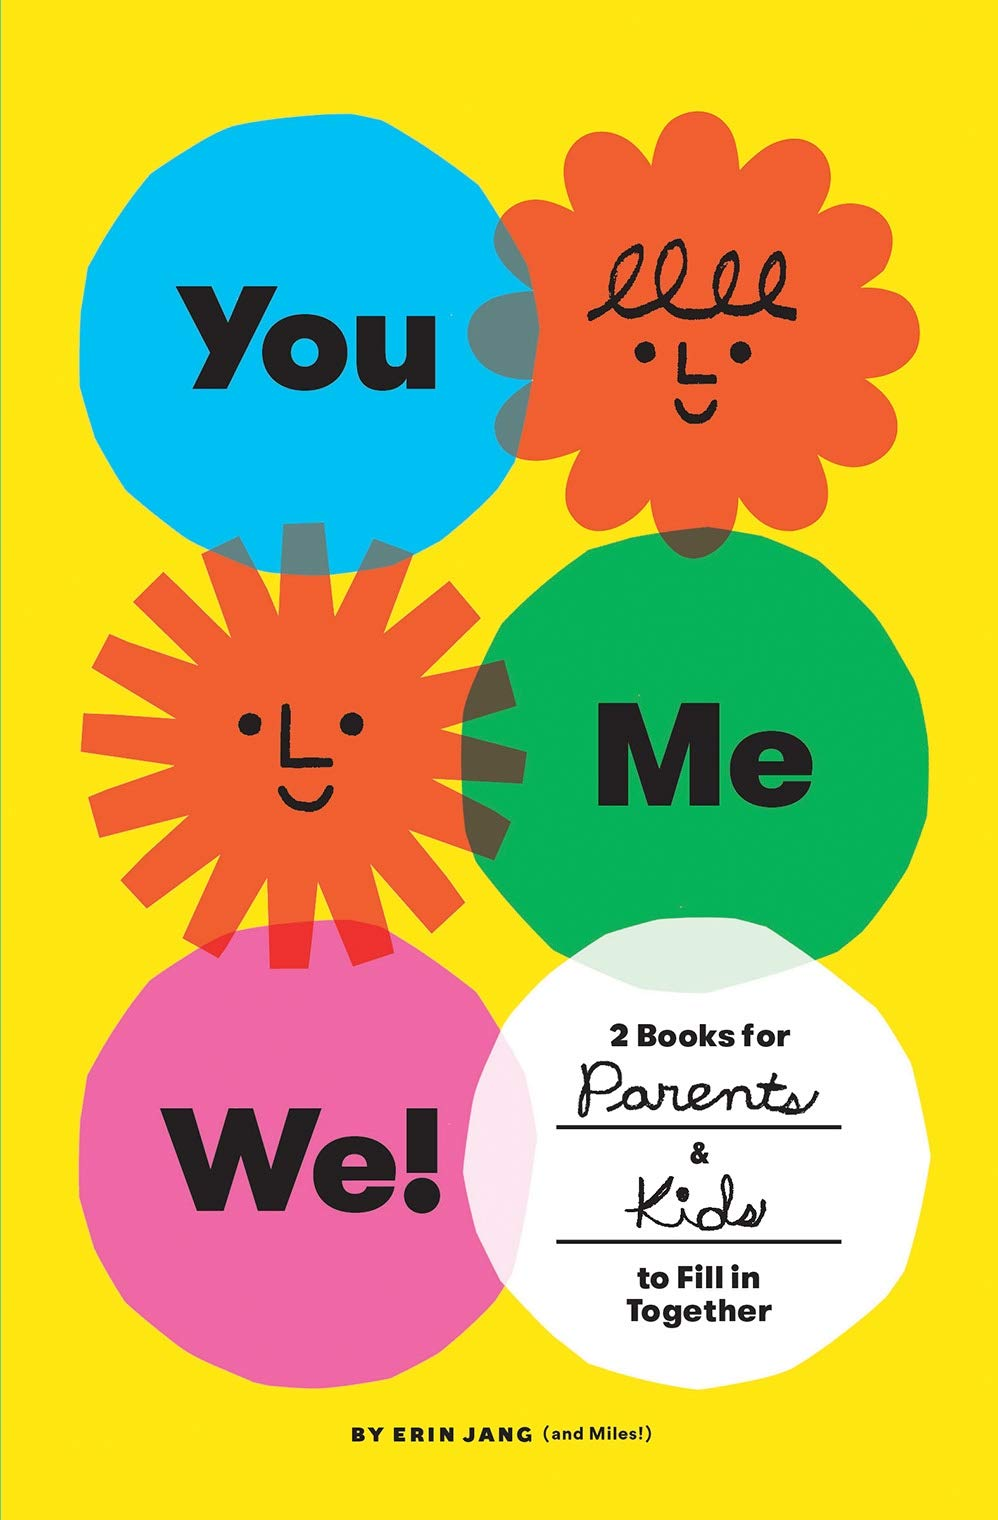 You Me We book cover